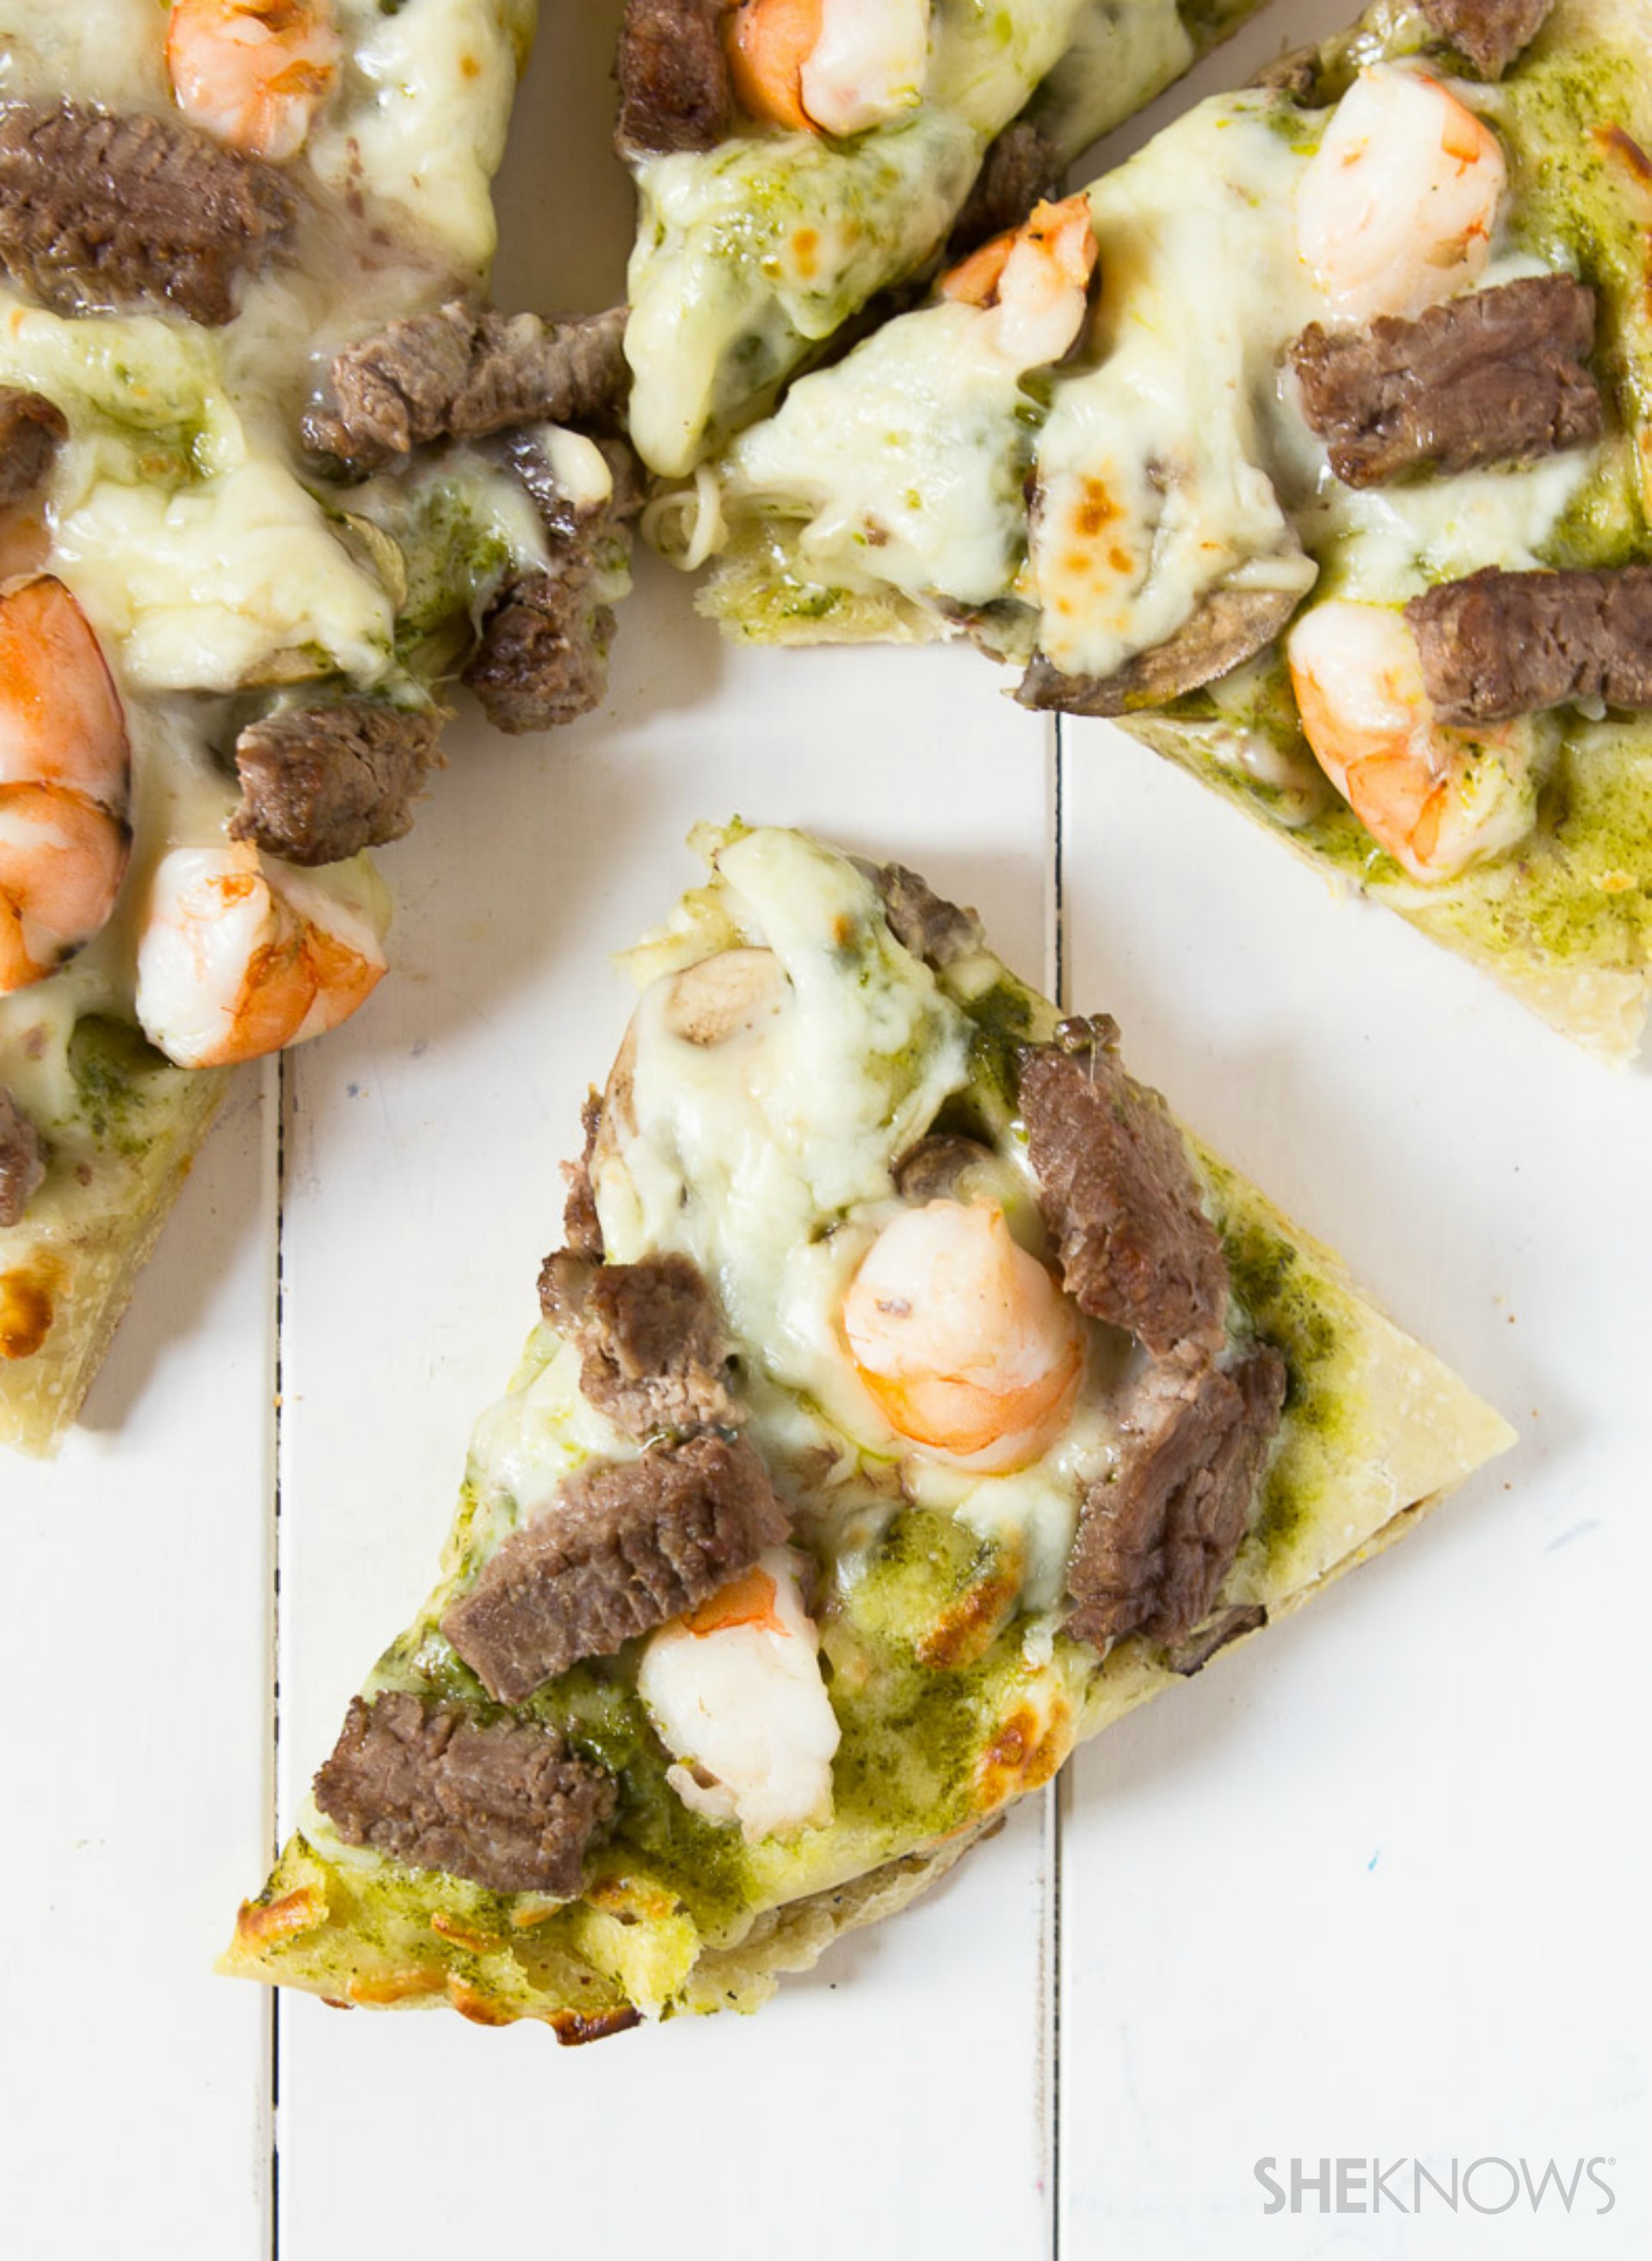 Surf and turf pizza